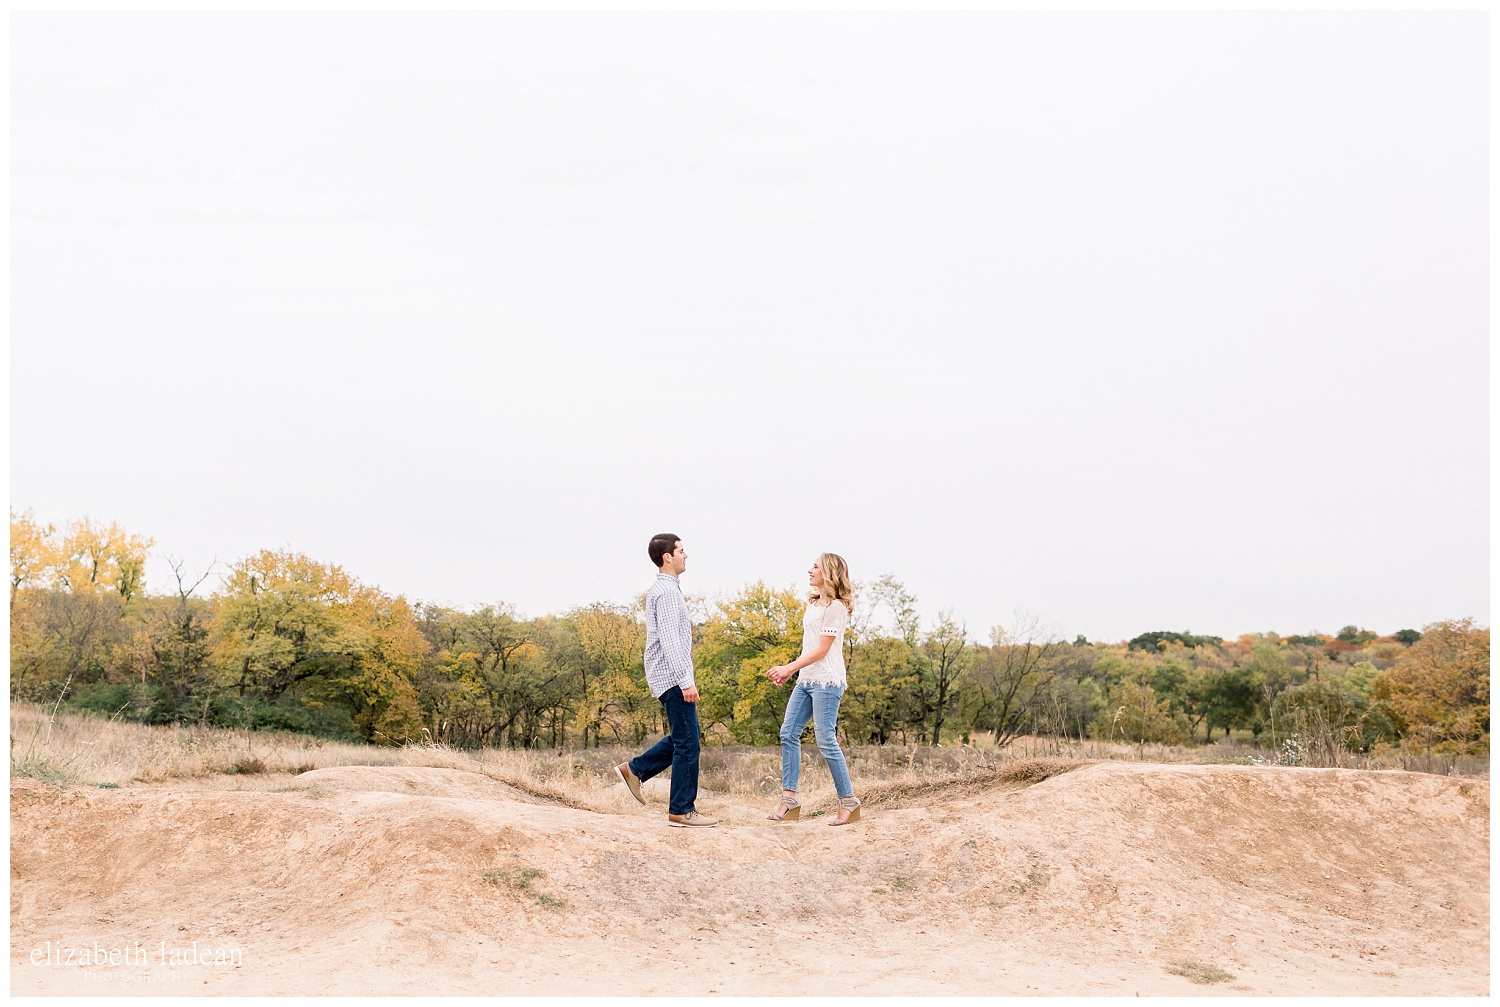 Colorful-Fall-Engagement-Photos-in-KC-C+B-2018-elizabeth-ladean-photography-photo_1781.jpg